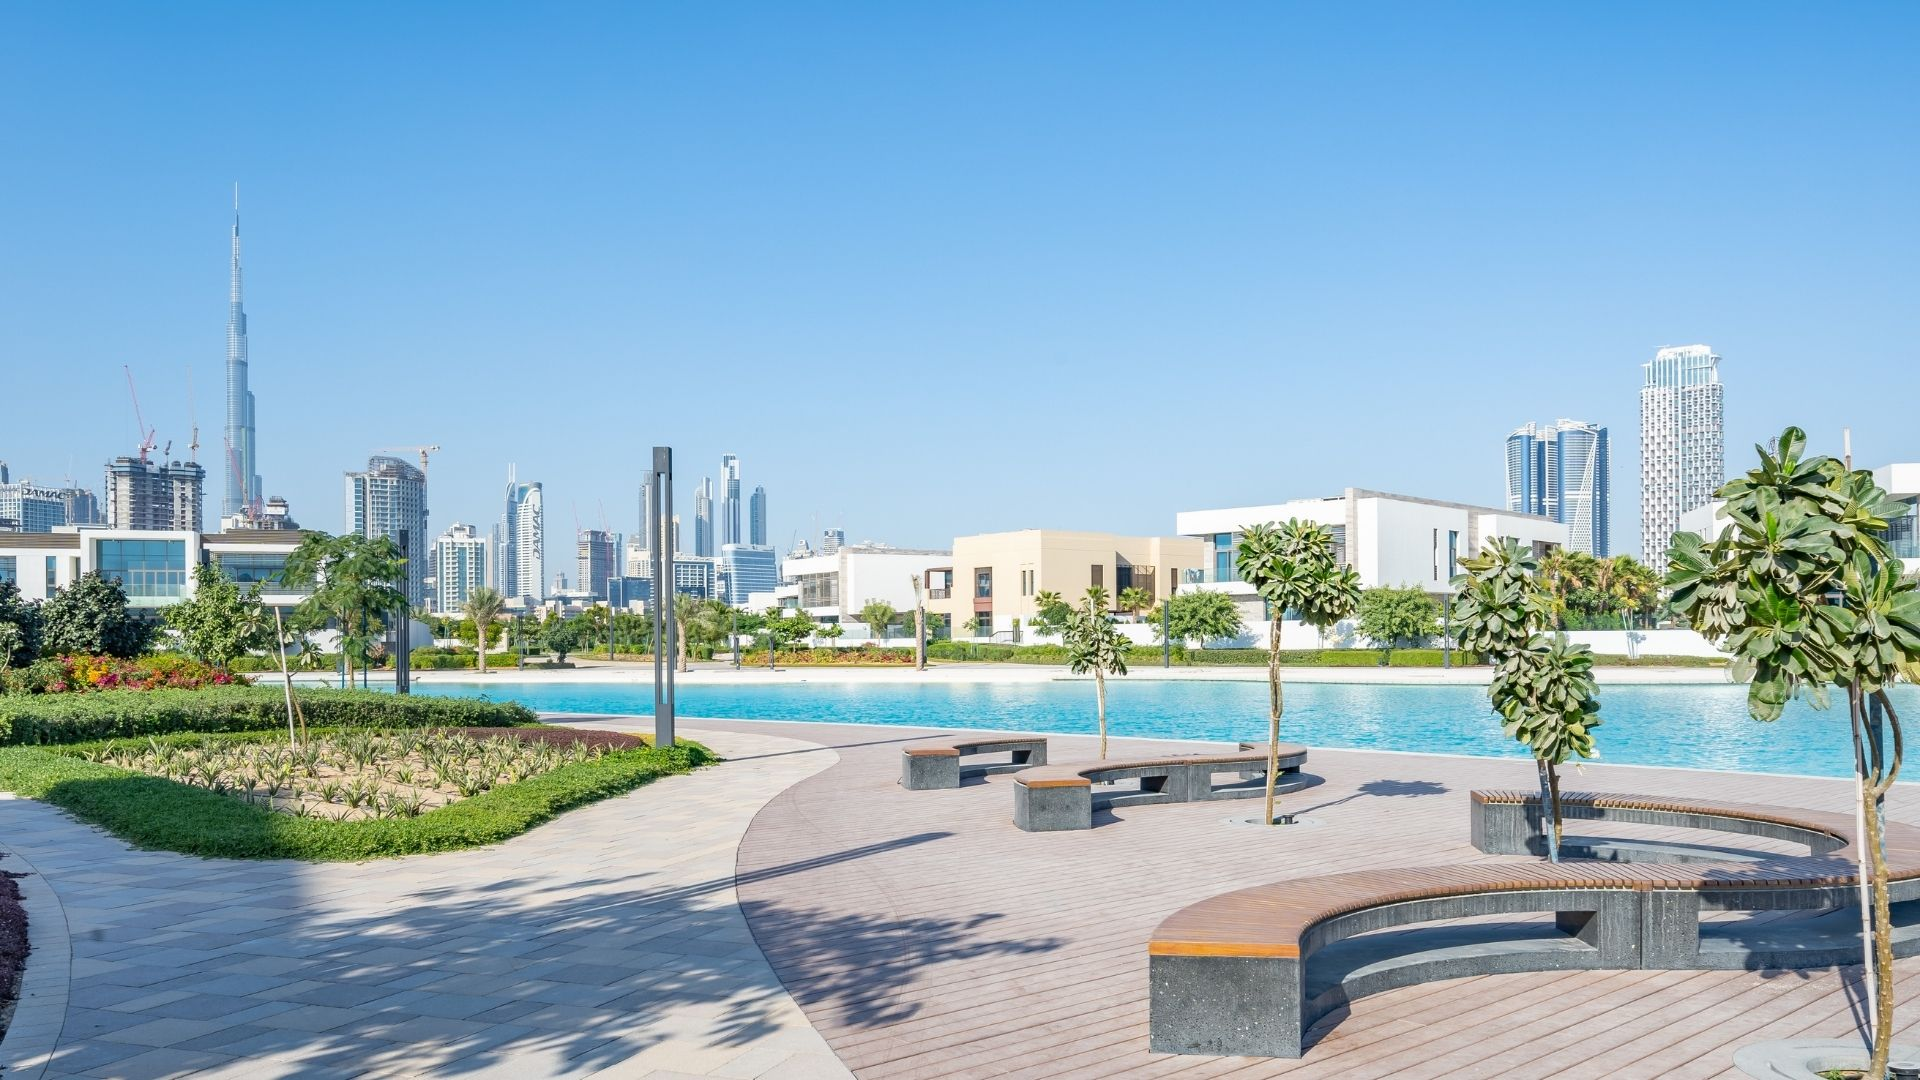 2 - Live like Royalty in These Amazing Luxury Homes in Dubai